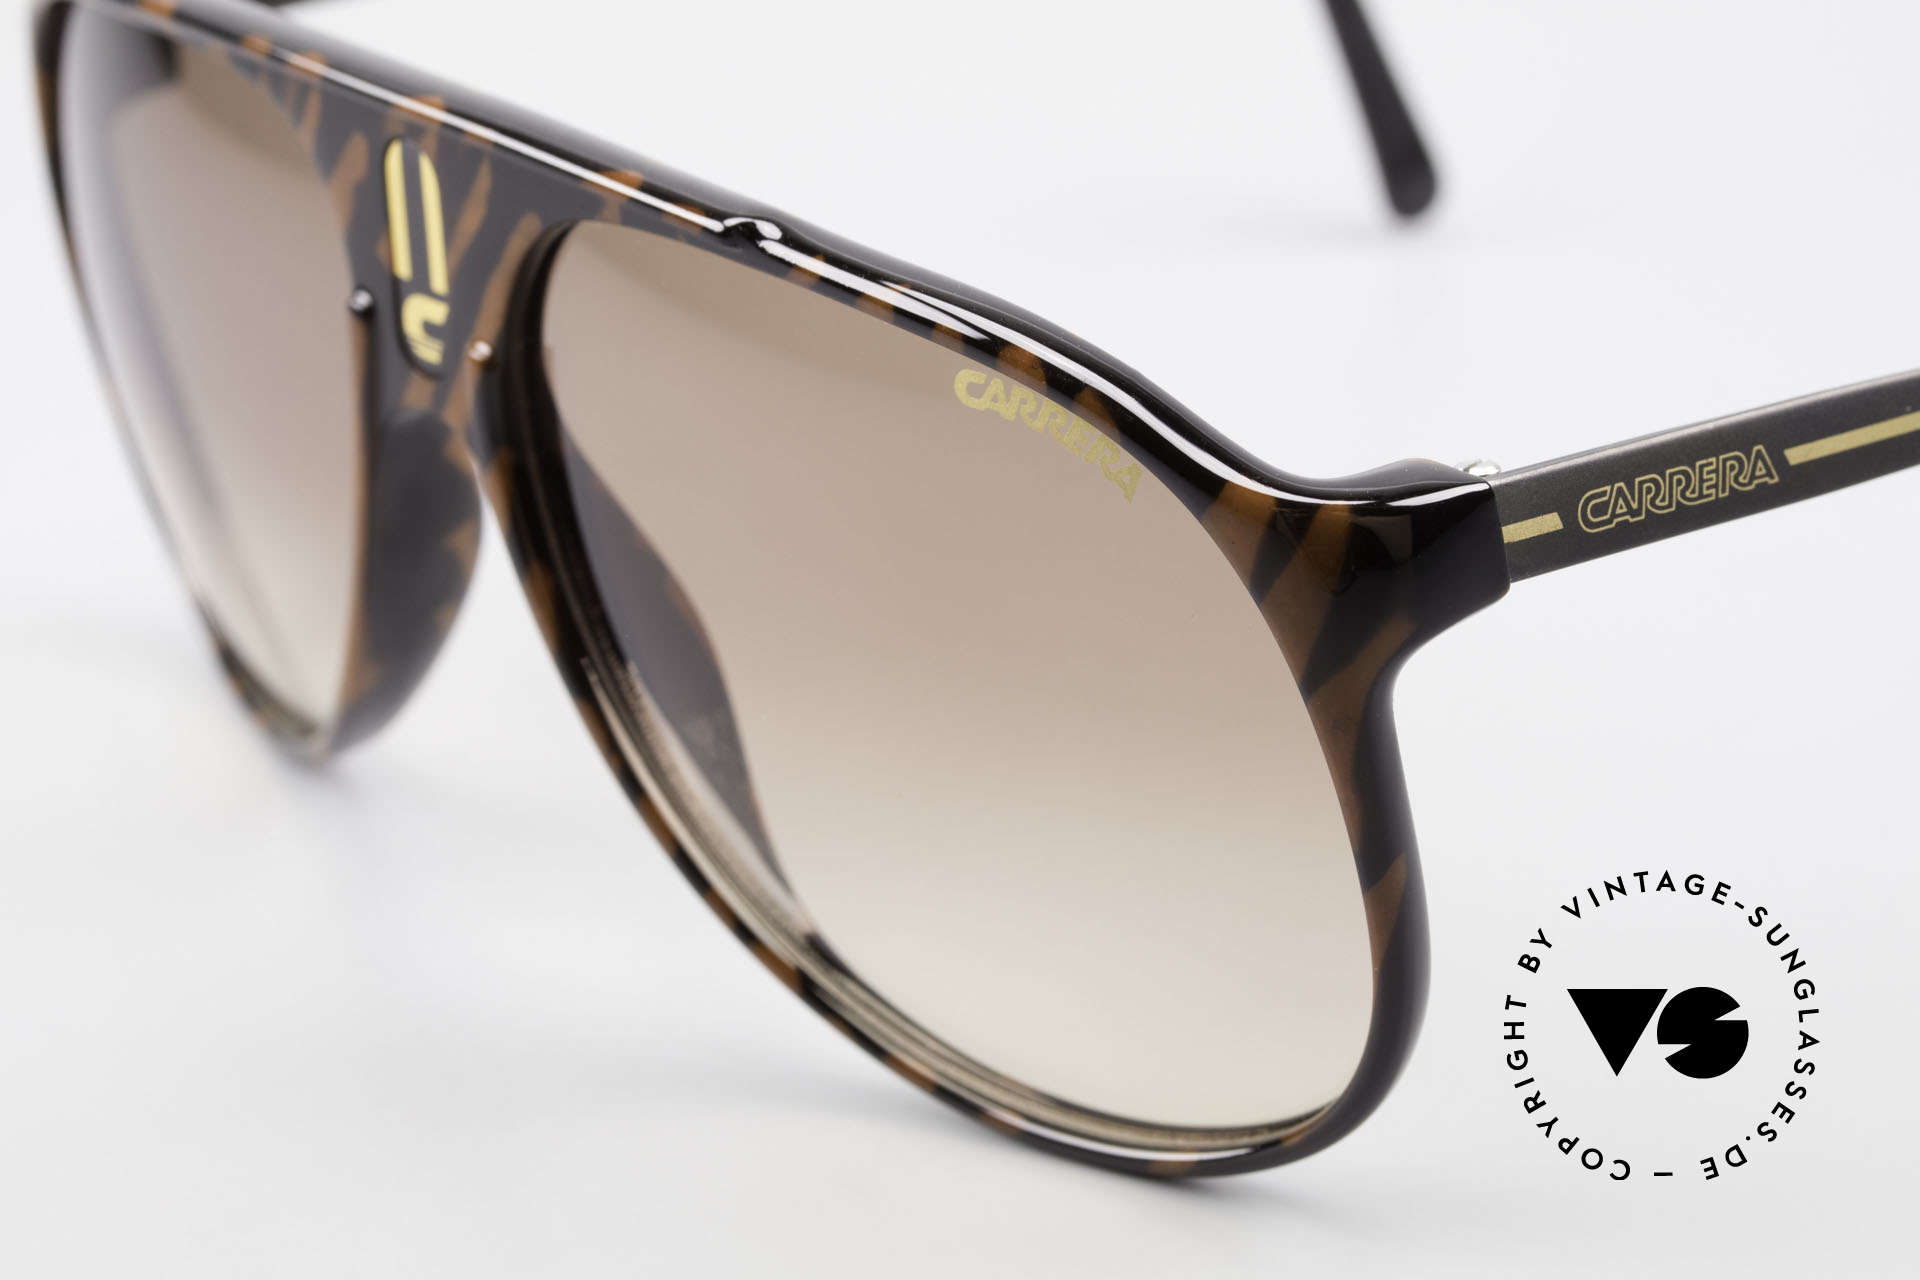 Carrera 5424 Aviator Sports Sunglasses 80's, functional shades and a stylish accessory likewise, Made for Men